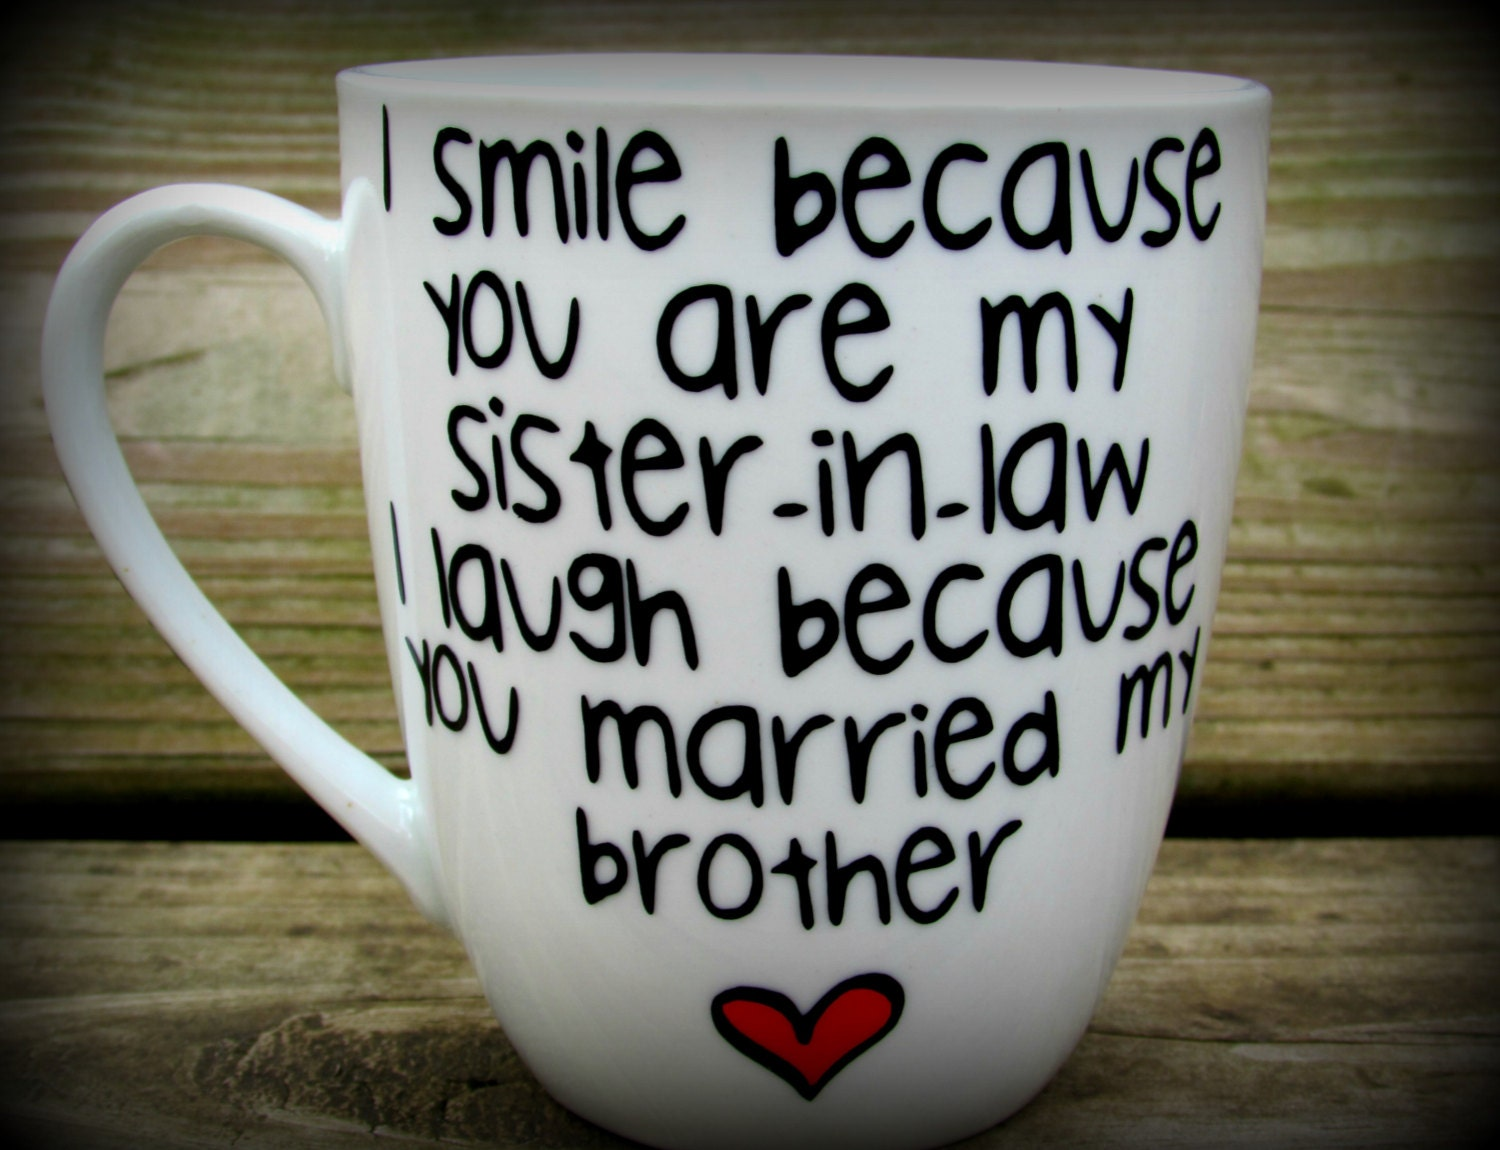 Wedding Gift For Brother And Sister In Law : Sister in law Sister in law gift sister in law mug sister